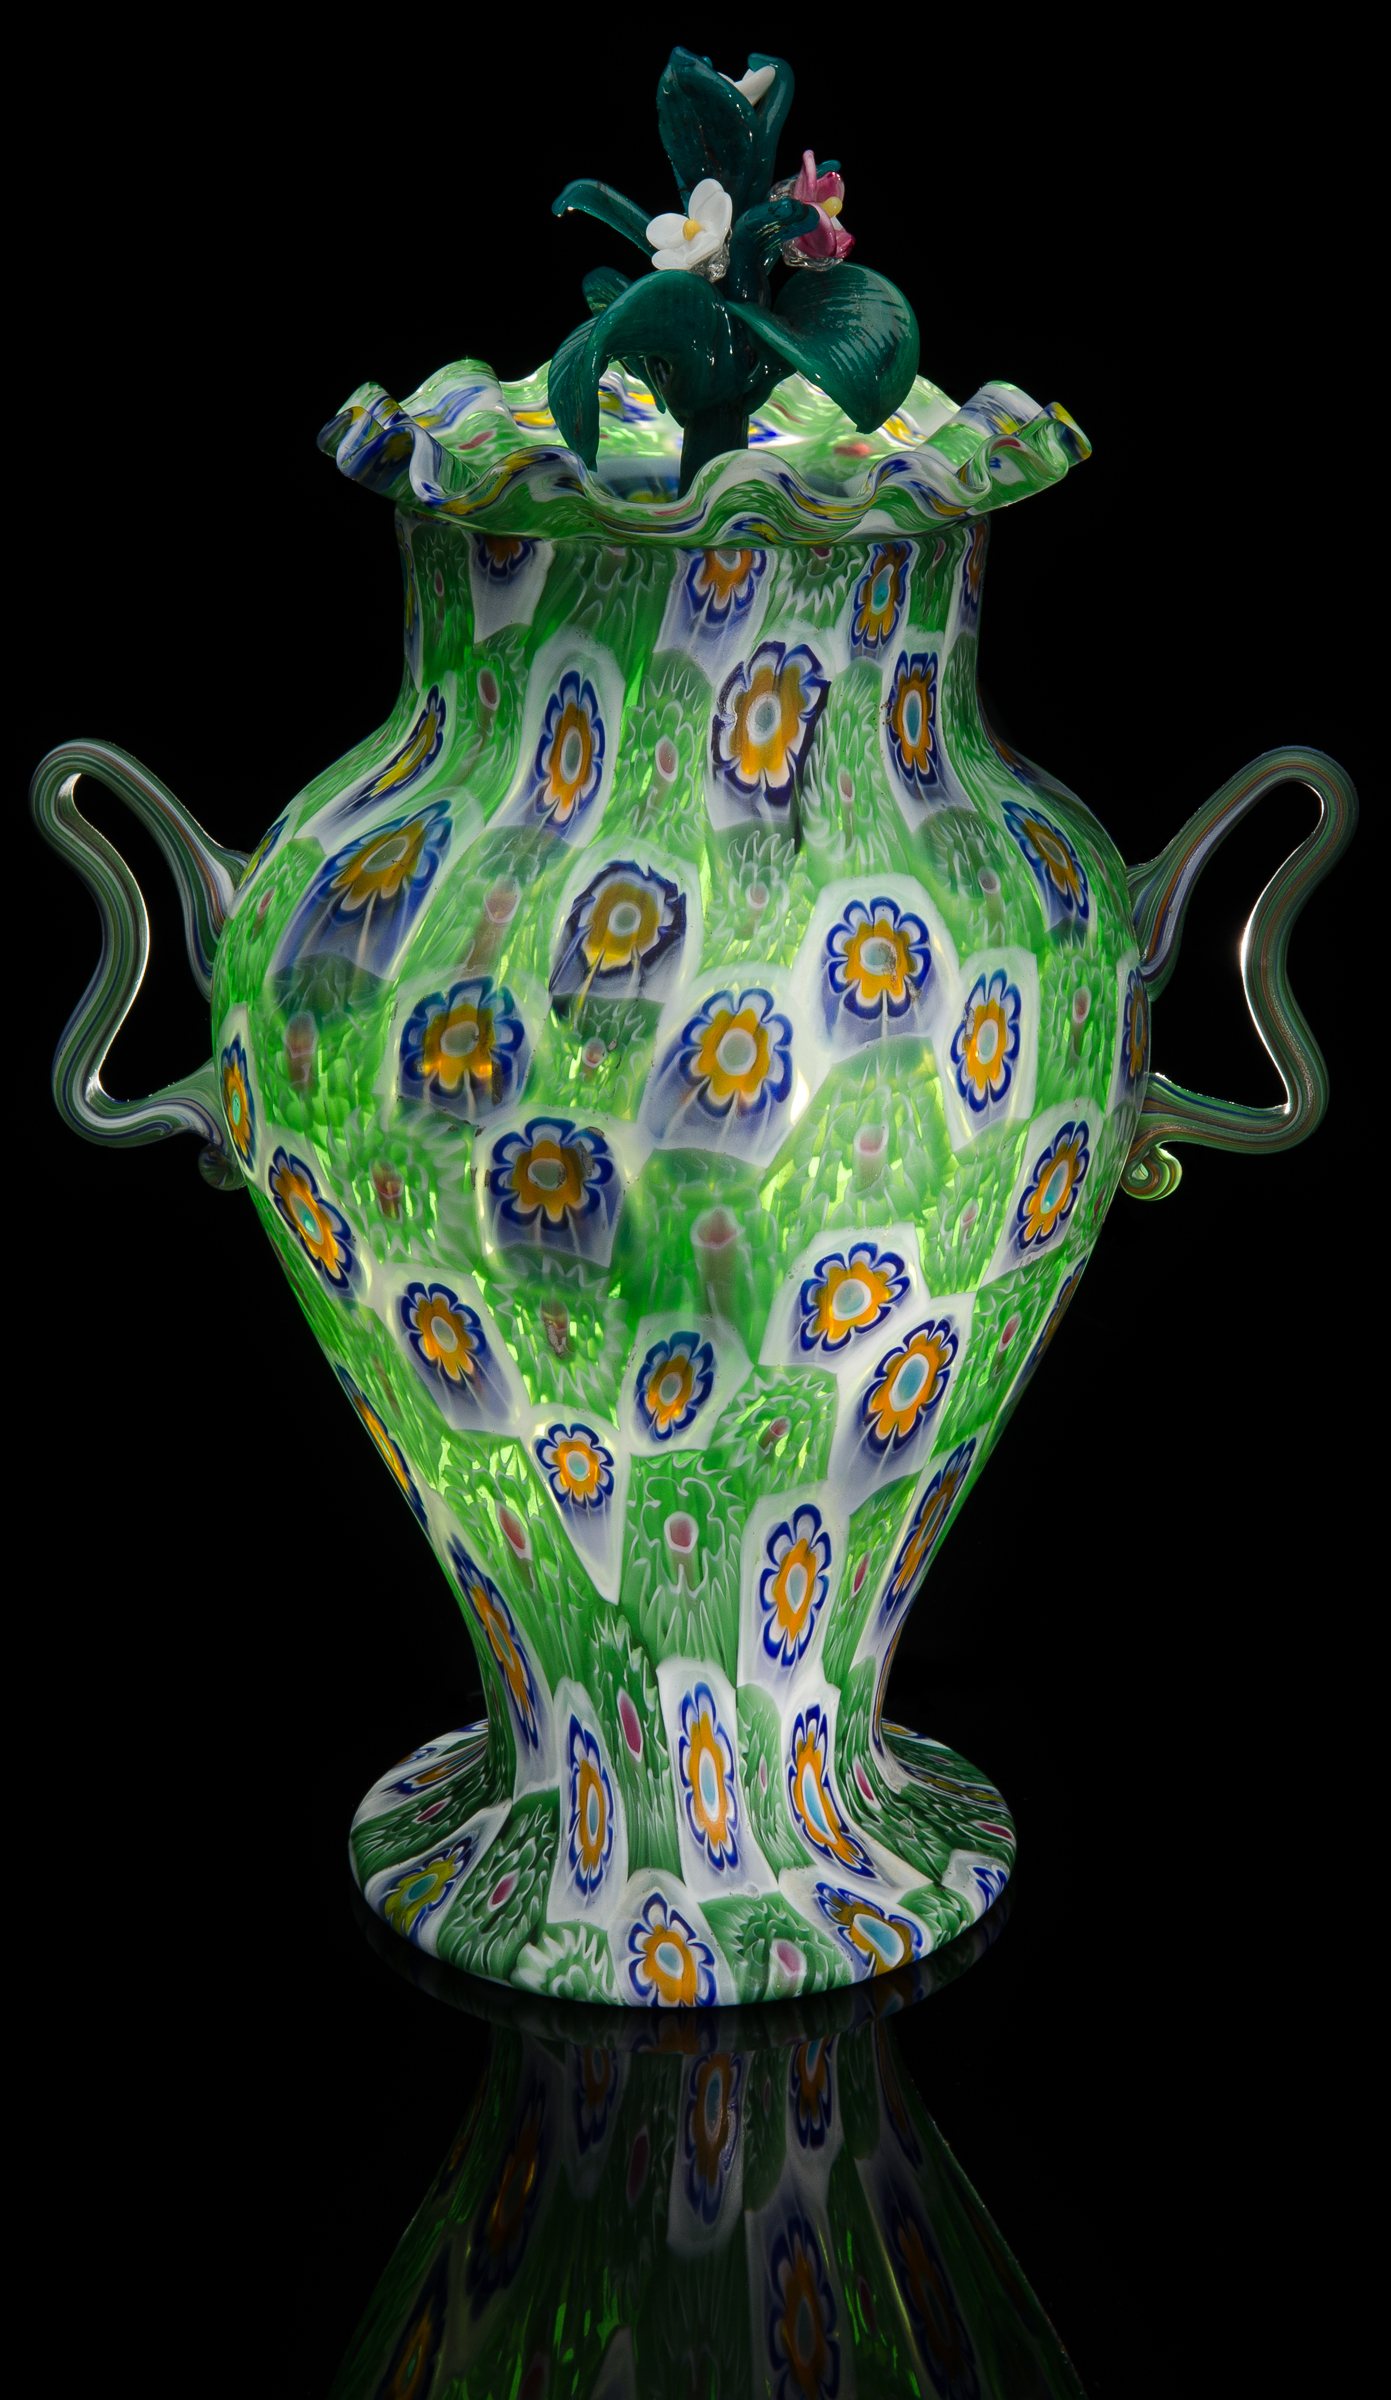 Fratelli Toso,  Green Urn-Shaped Lamp with Checkered Murrhine Pattern with Finials  (circa 1925, glass, 12.5 inches), VV.289